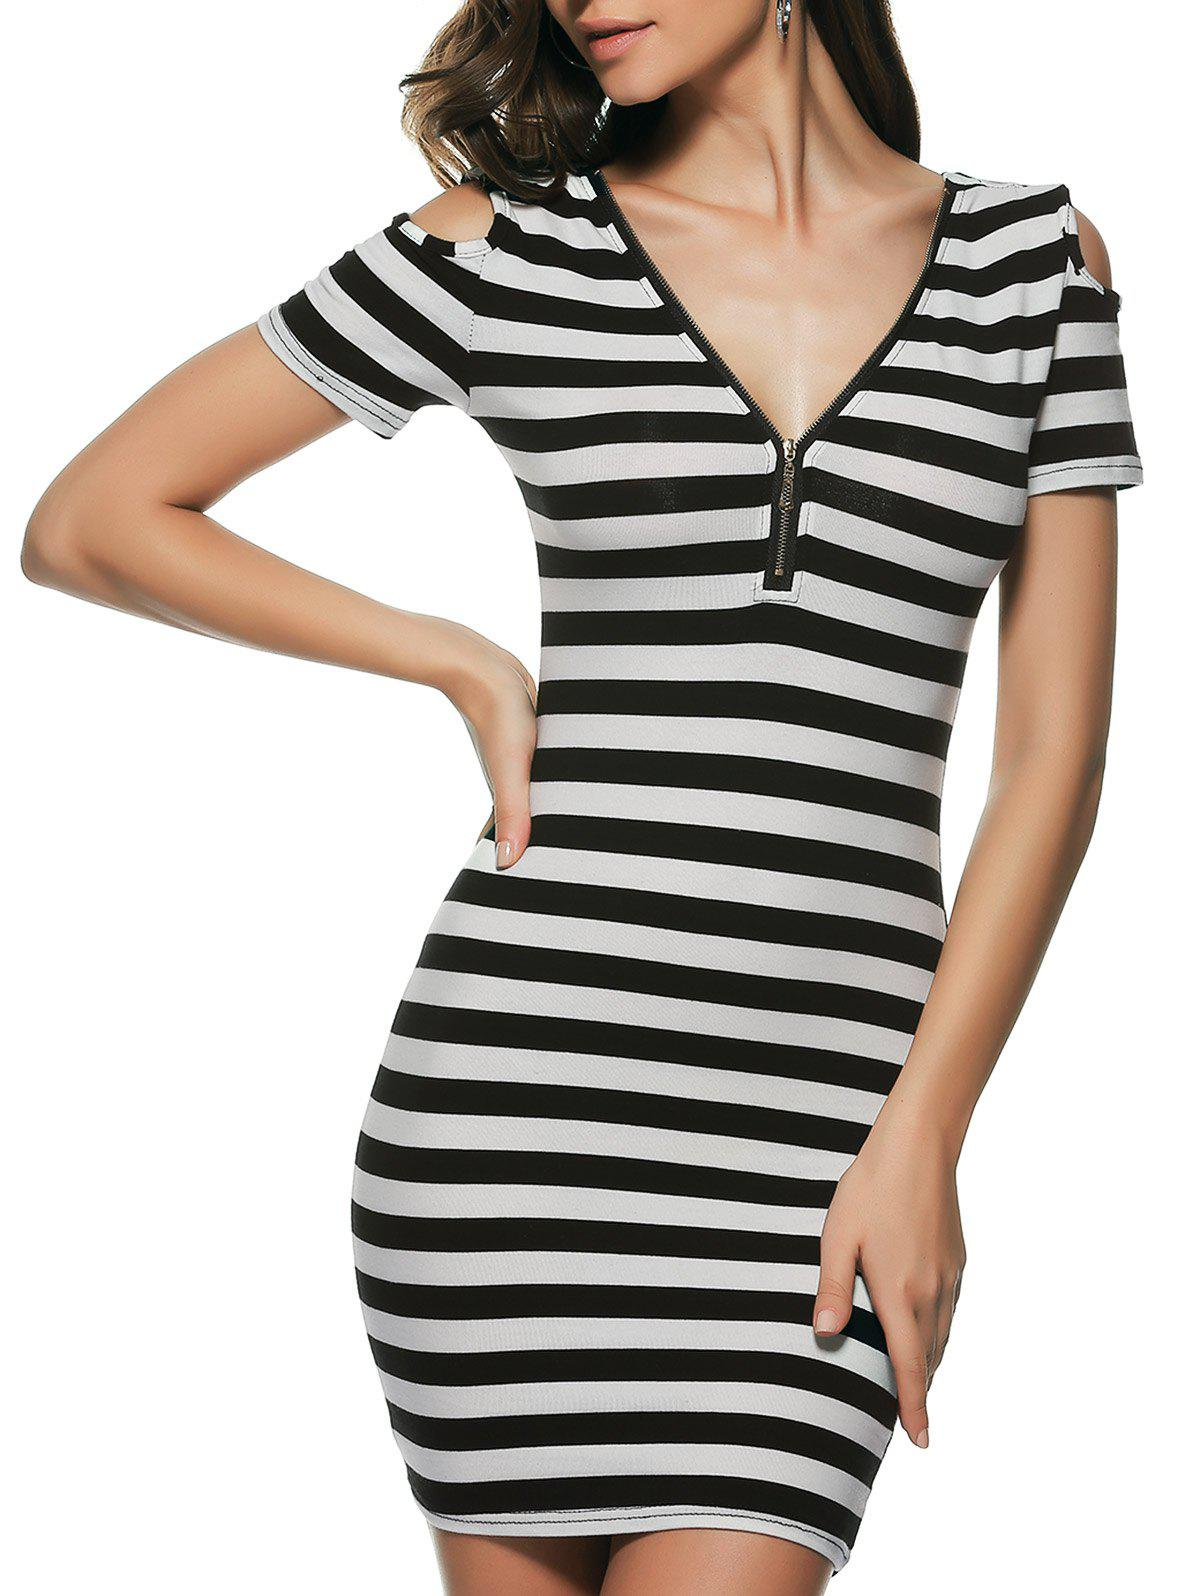 Striped Cold Shoulder Bodycon Dress - WHITE/BLACK ONE SIZE(FIT SIZE XS TO M)